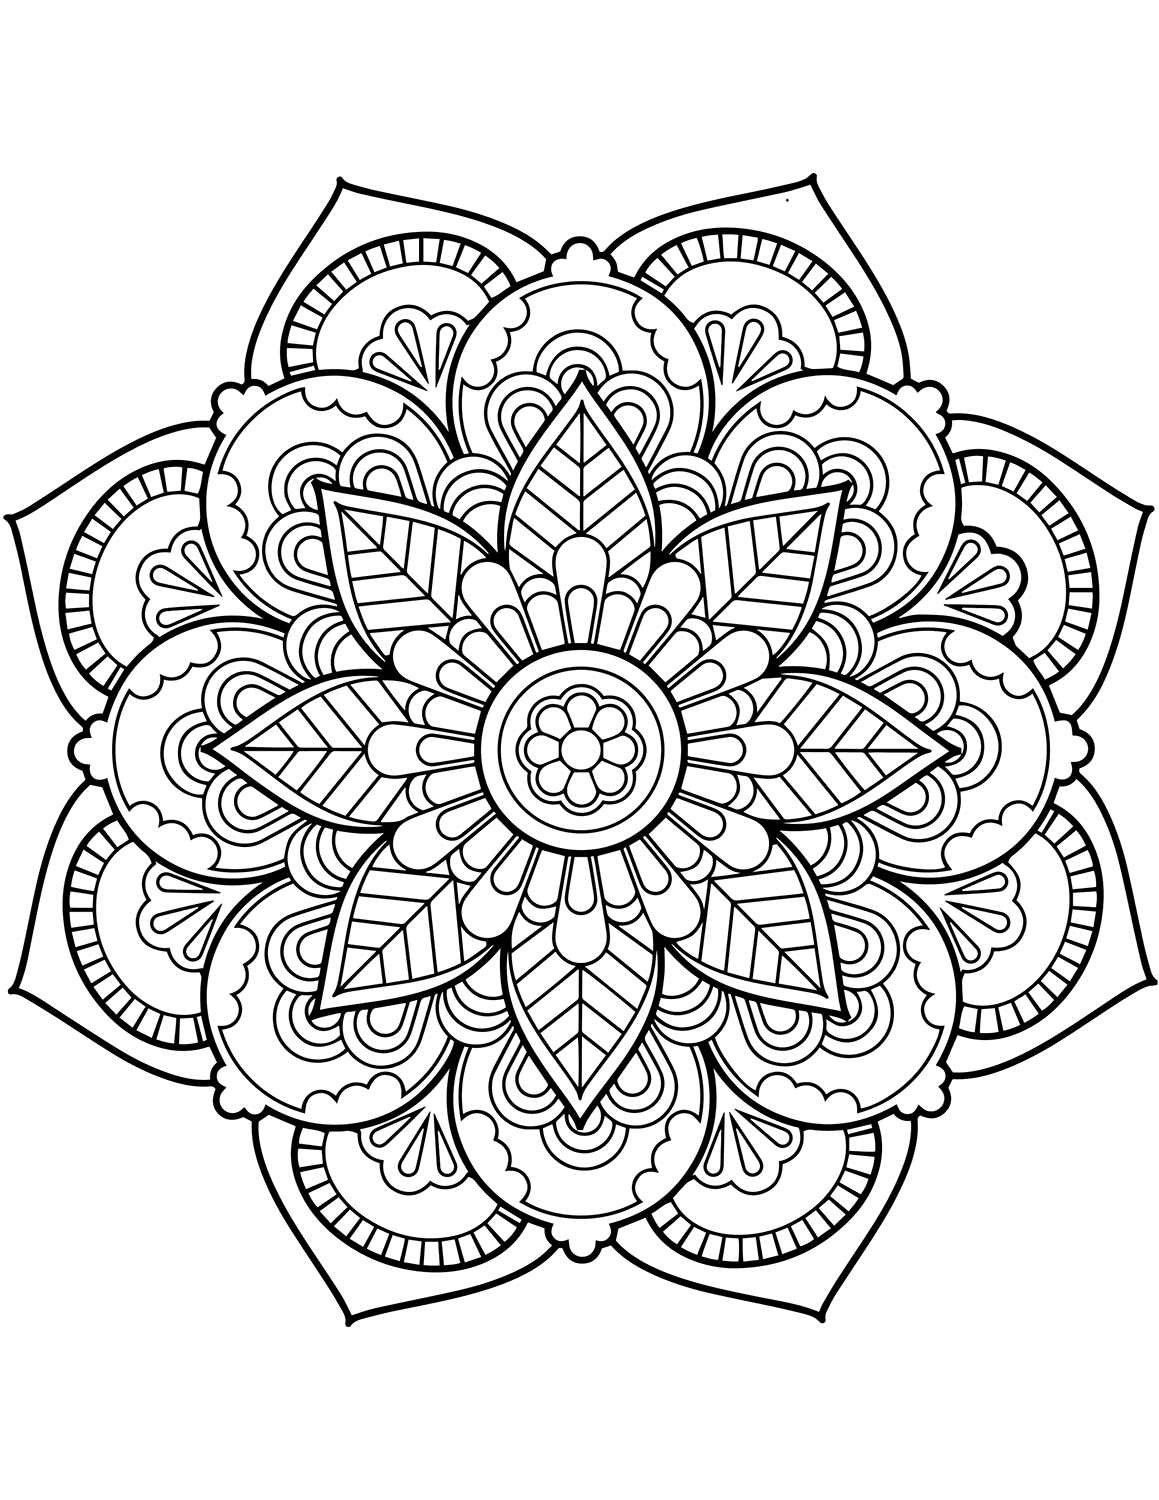 free printable mandala coloring sheets simple mandala coloring pages download and print for free coloring sheets mandala printable free